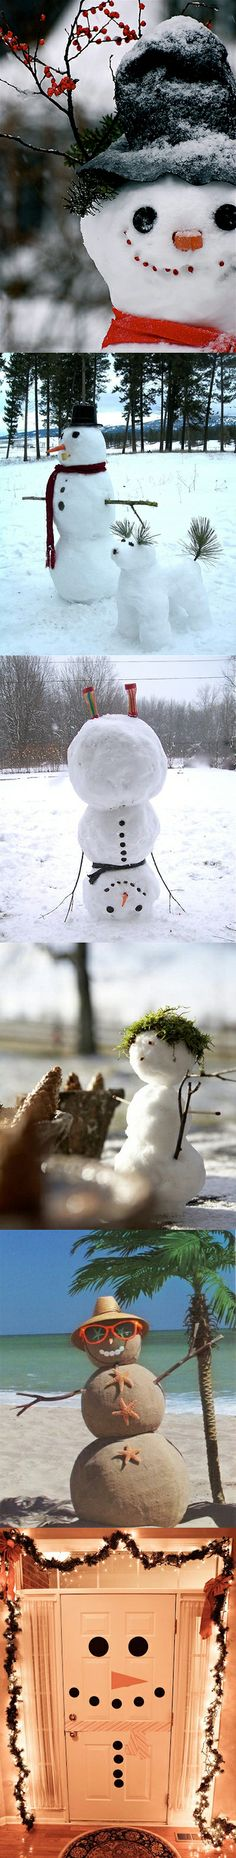 6 Unique Snowman Ideas -this will come in handy since there's a large chance of snow tomorrow and we rarely ever see snow